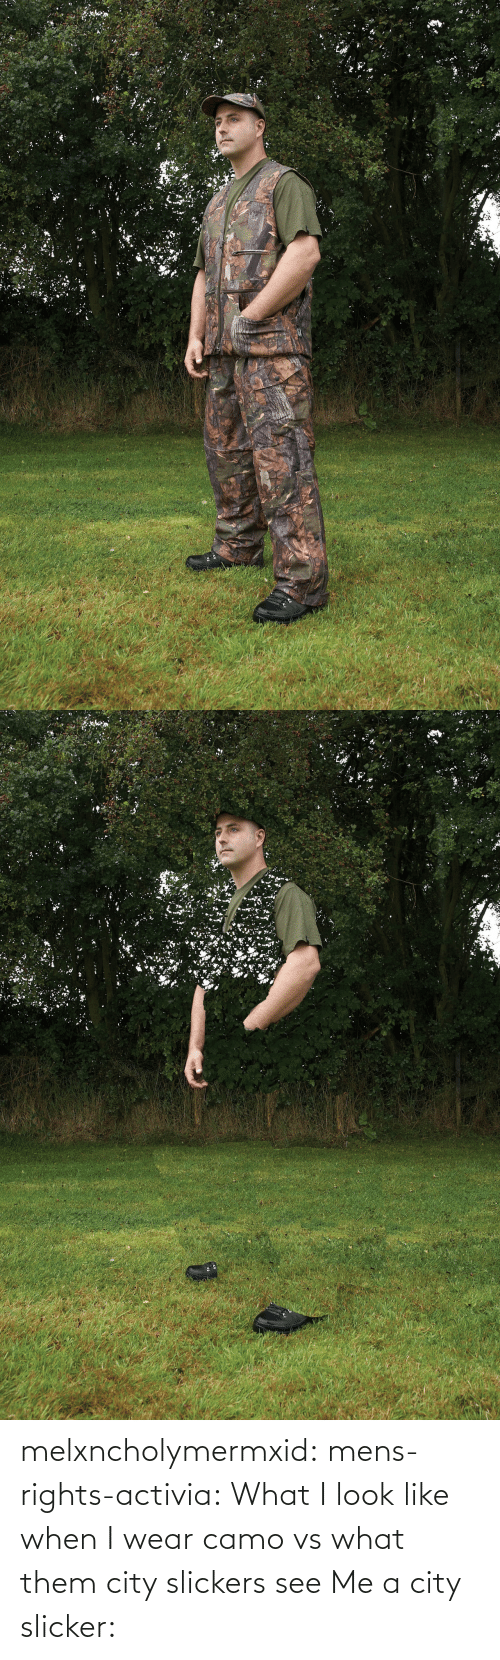 When I: melxncholymermxid: mens-rights-activia:  What I look like when I wear camo vs what them city slickers see   Me a city slicker: